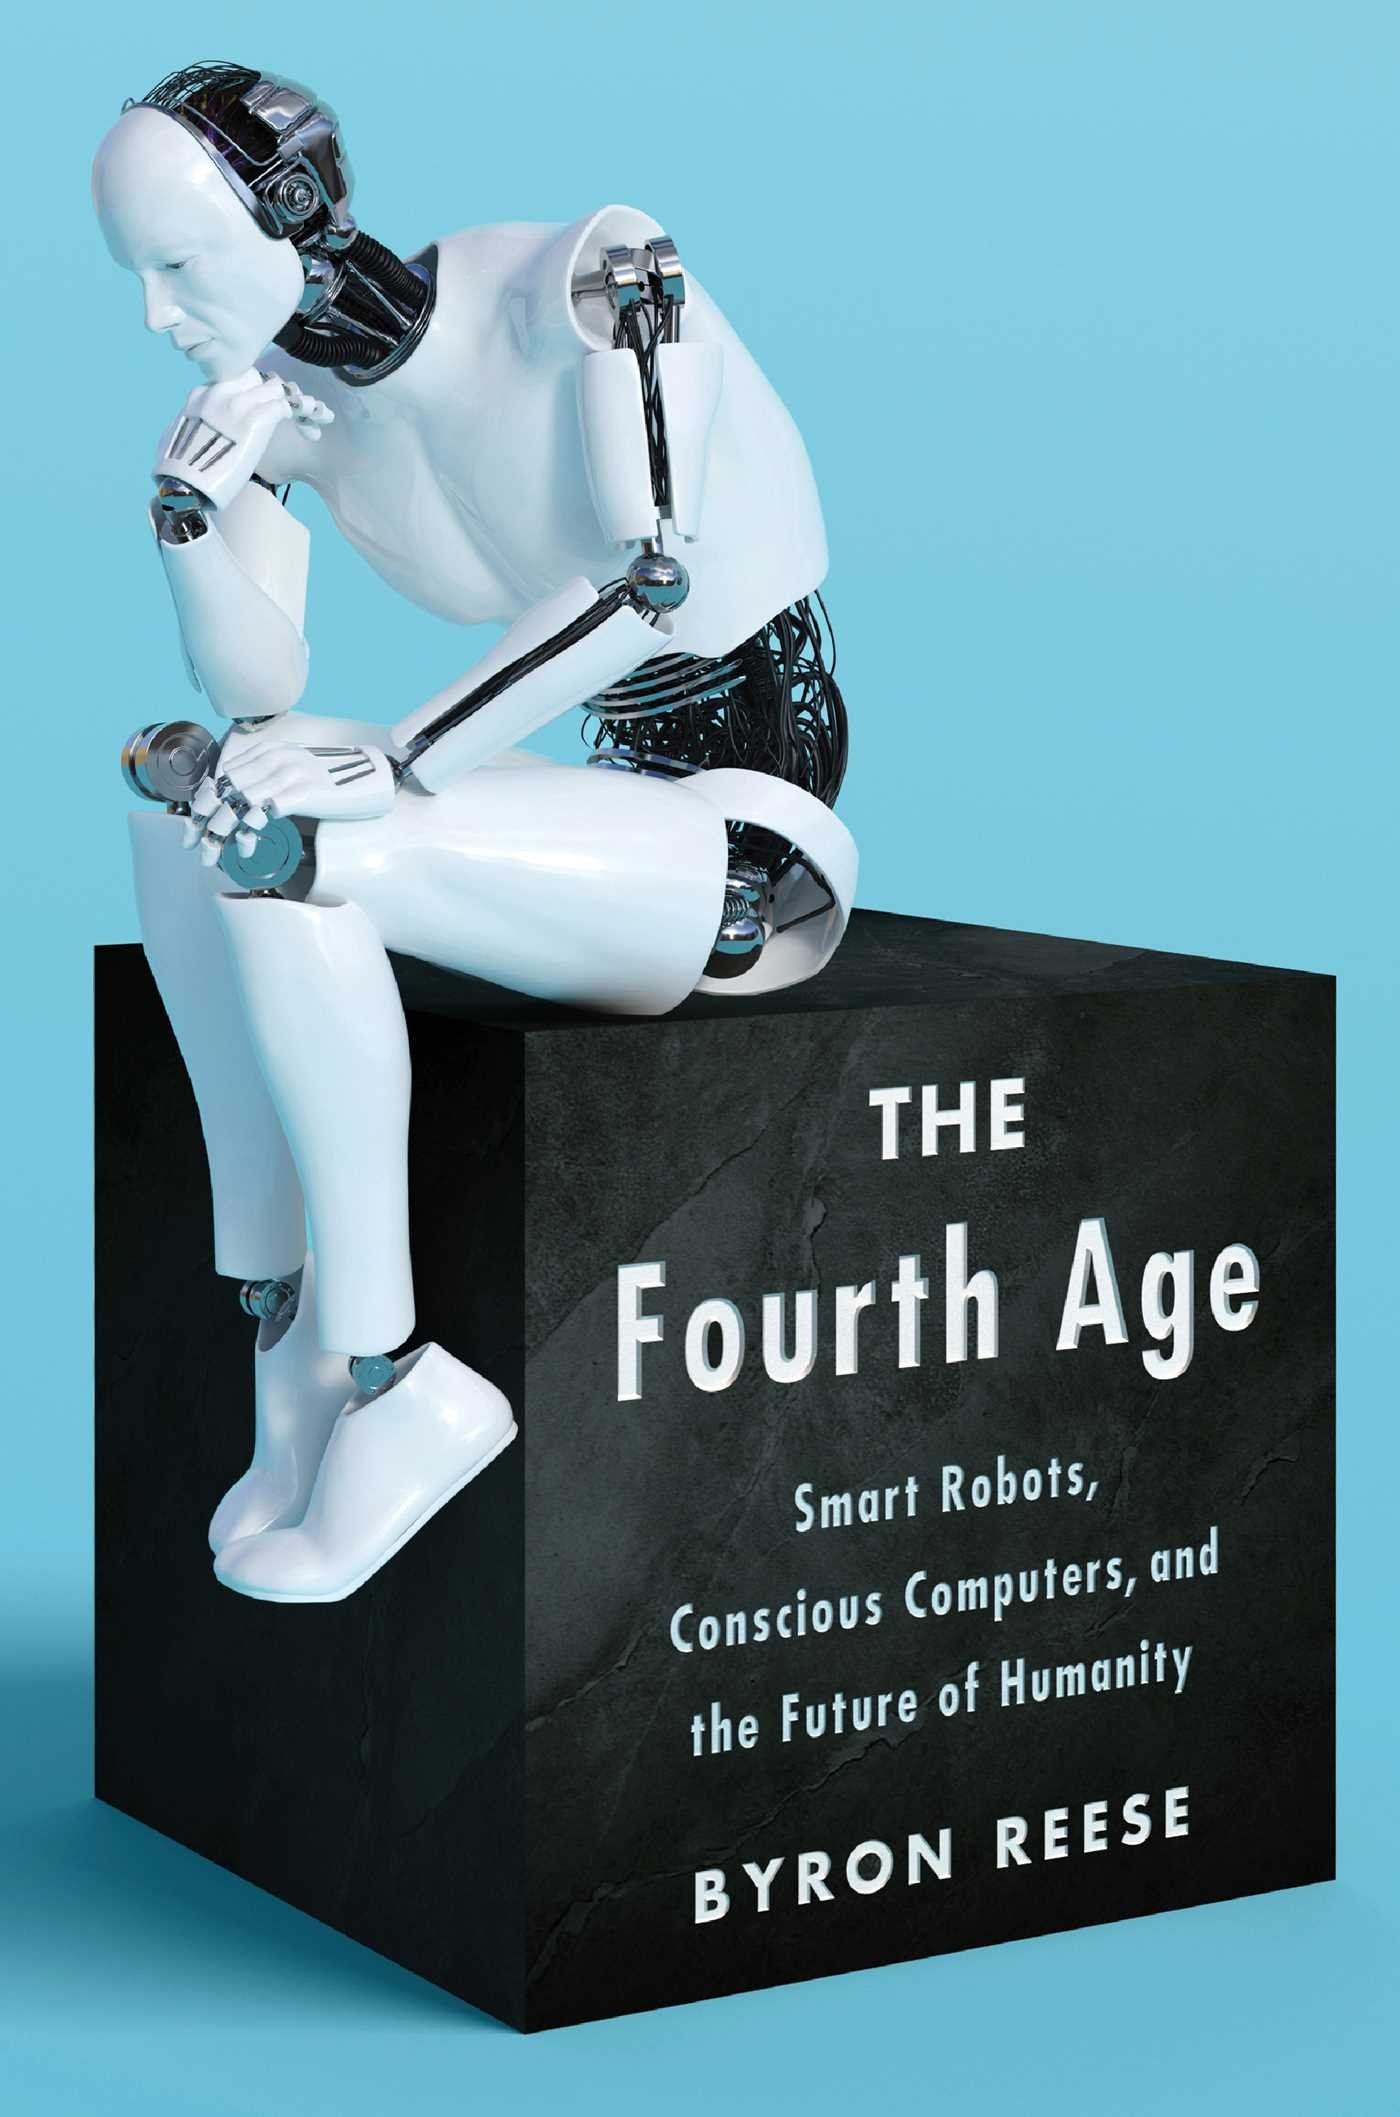 The Fourth Age: Smart Robots, Conscious Computers, and the